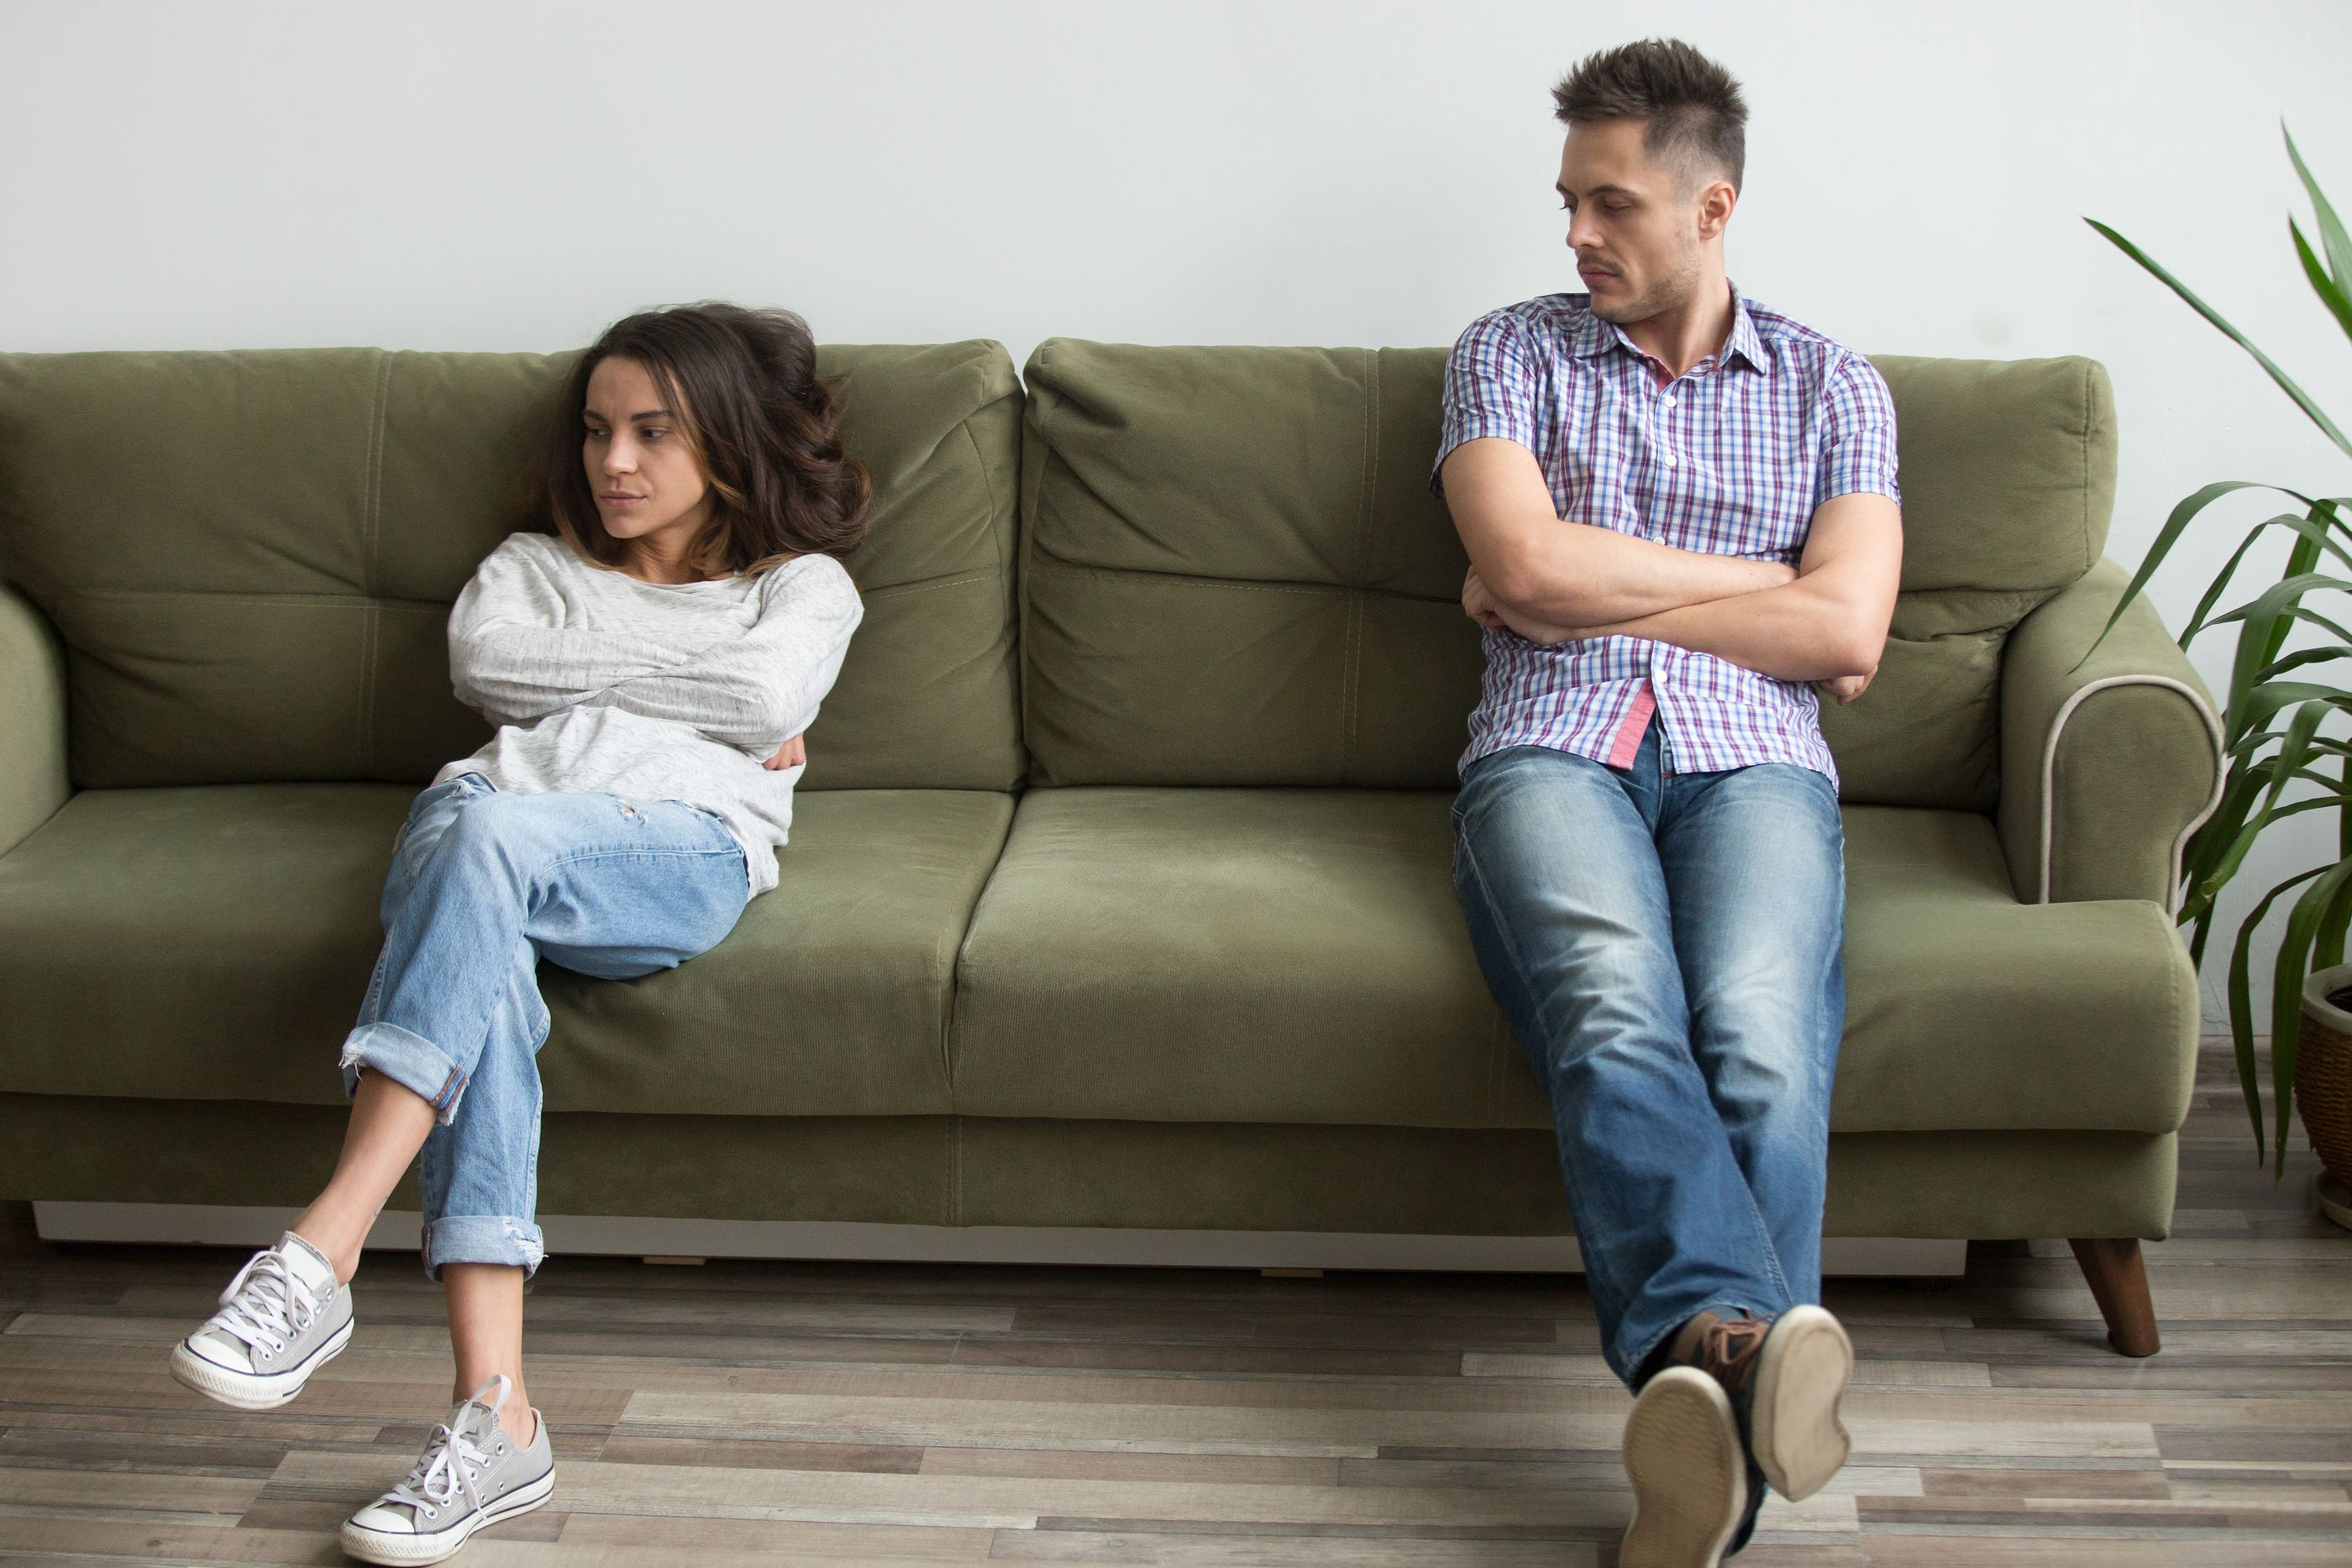 , Manchester hypnosis for jealousy insecurity and emotional problems